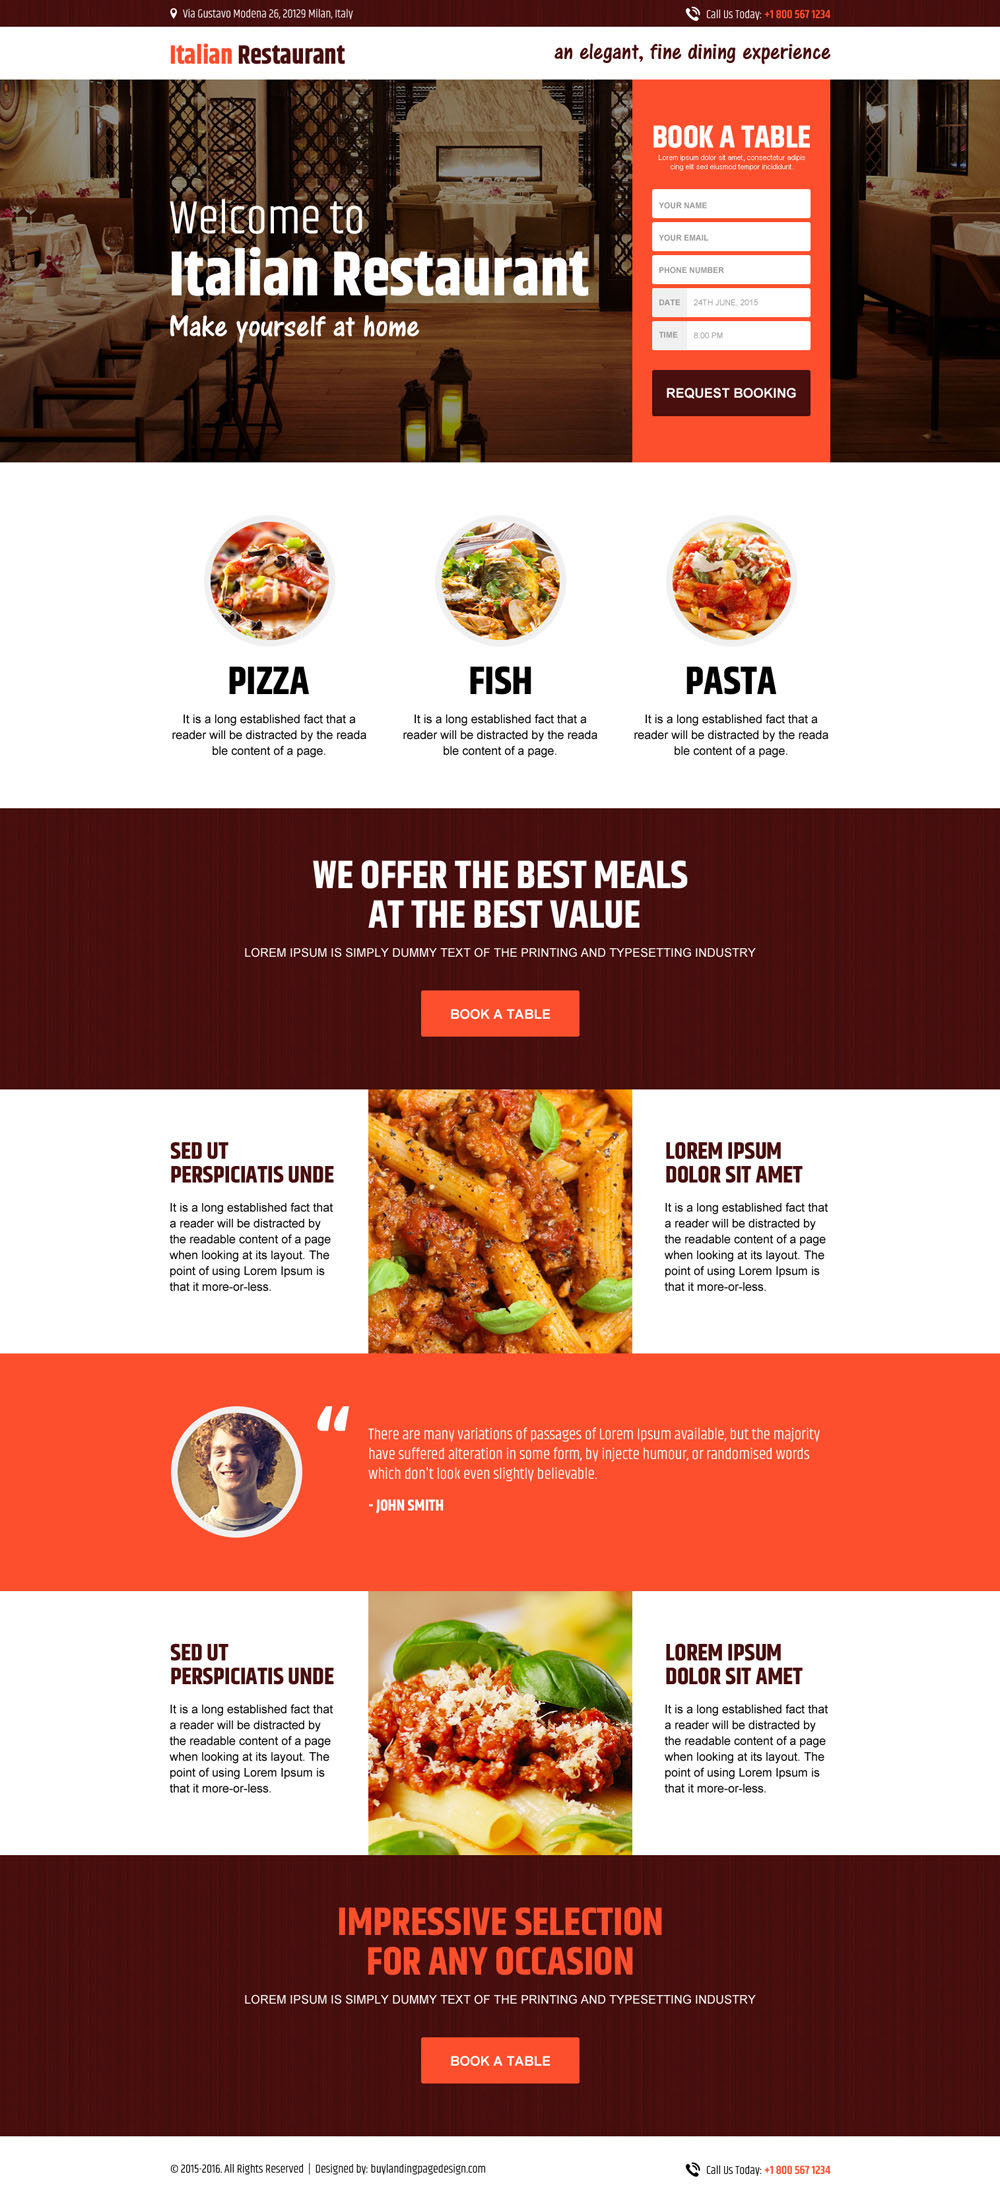 best-italian-restaurant-lead-capture-converting-responsive-landing-page-design-001